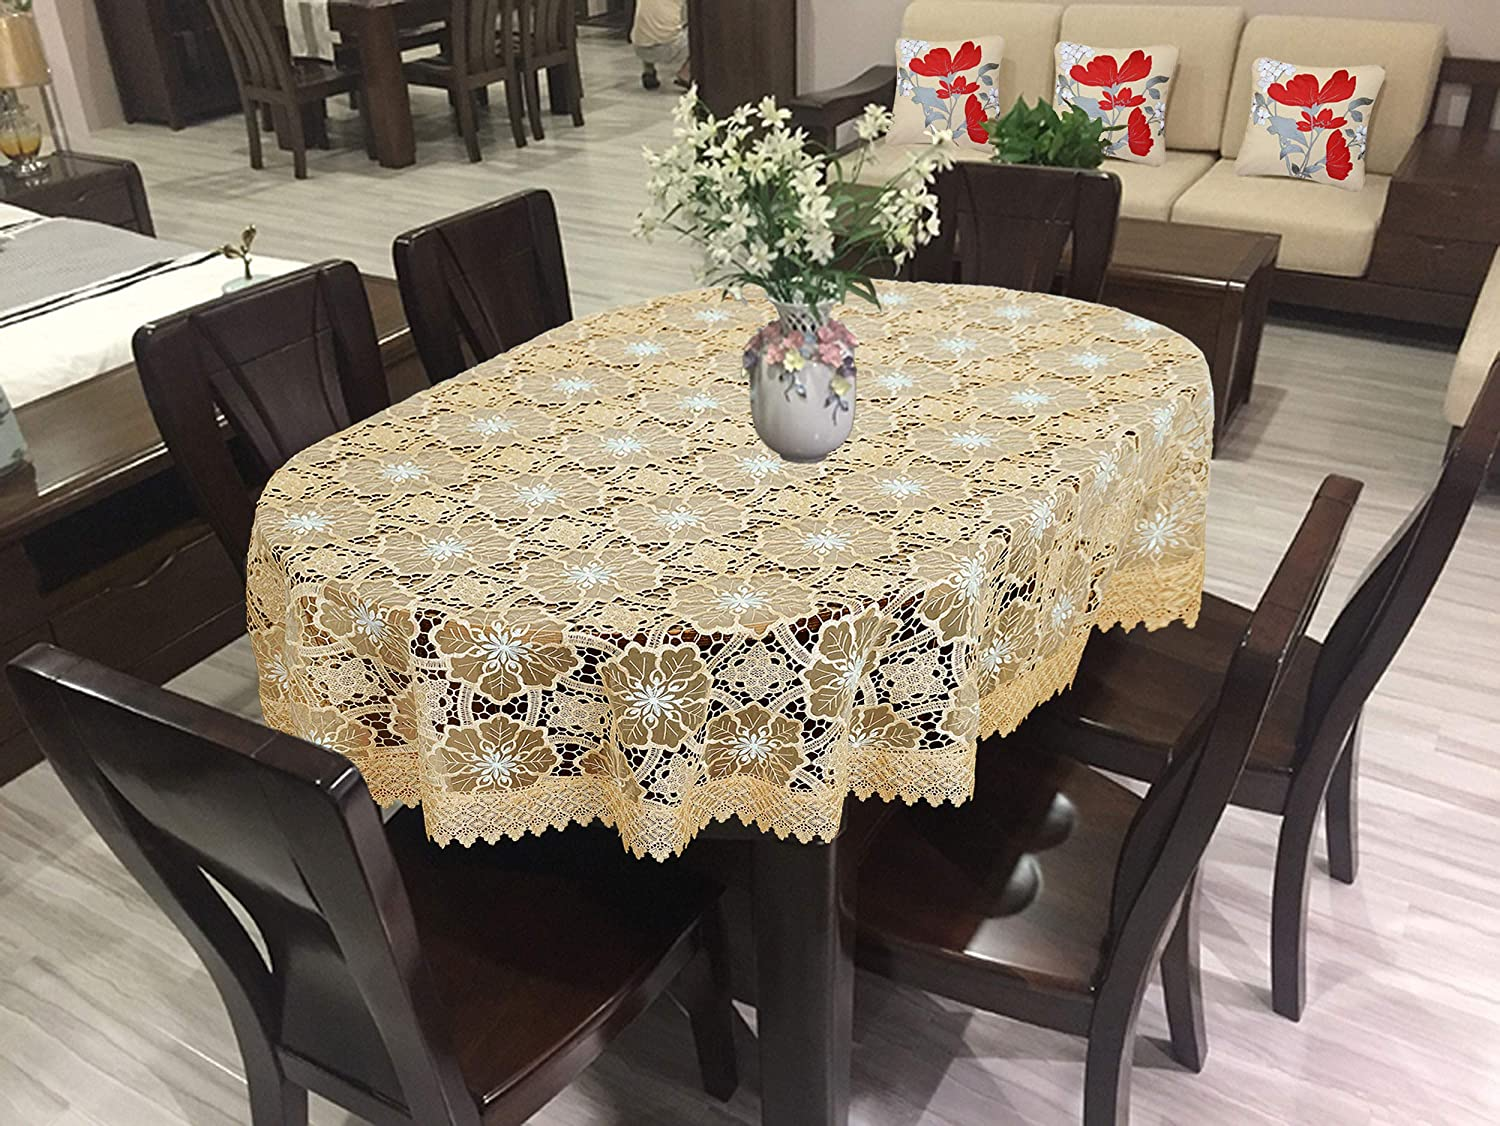 Simhomsen Beige Embroidered Lace Tablecloth 54 /× 72 Inch Oval 10127-1